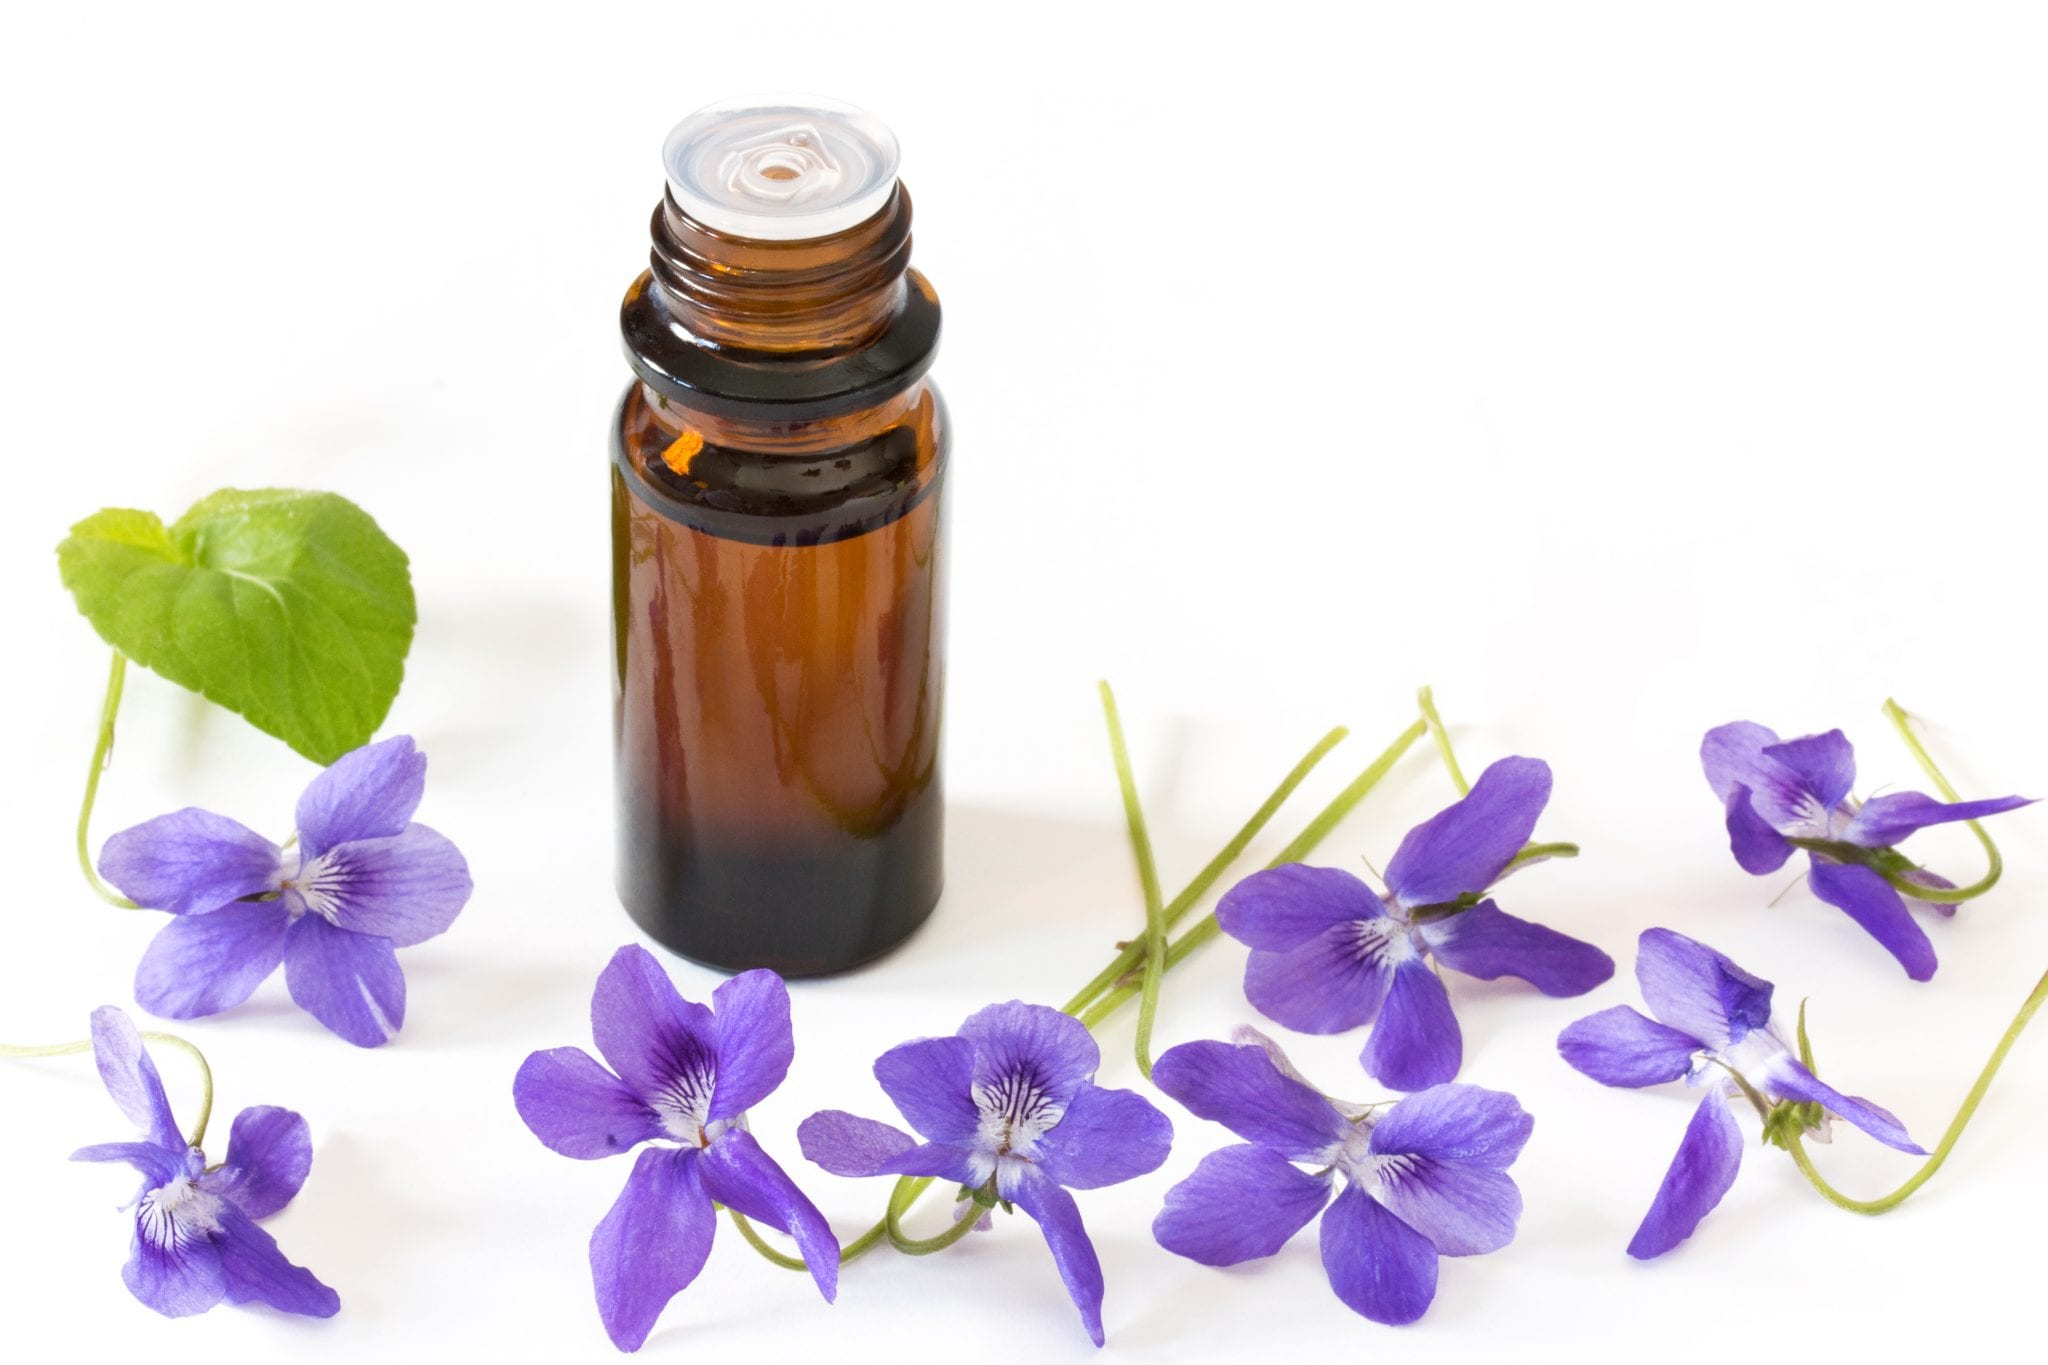 Violet For Skin Care And Medicinal Use Healthy Hildegard